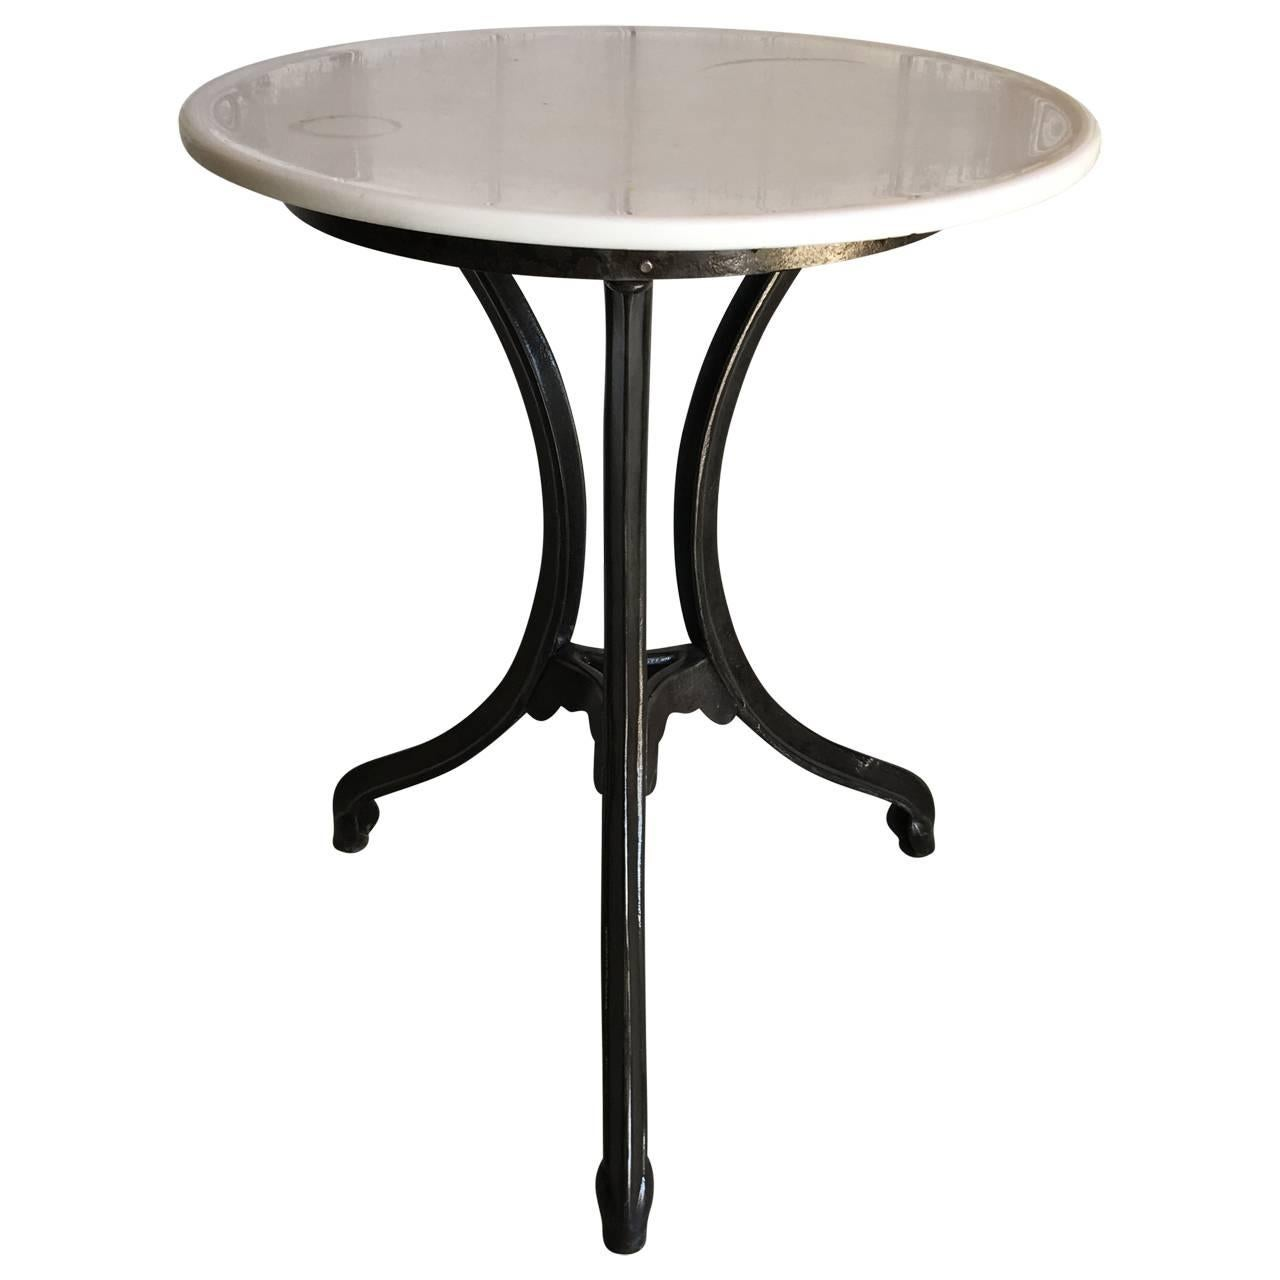 Early 20th Century Fountain Table with Opaque Tabletop